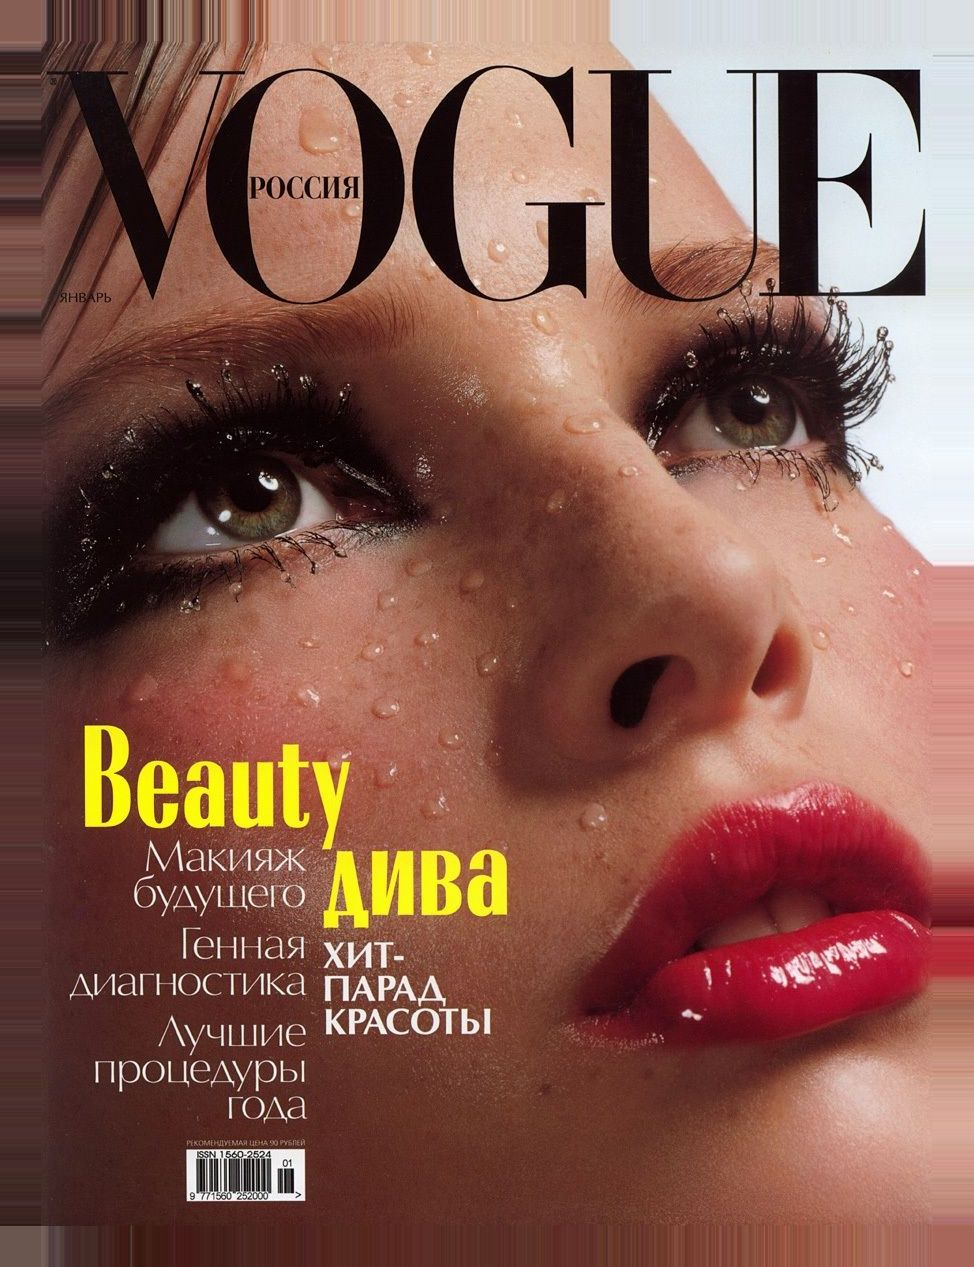 #kouklina #Lindsay Ellingson face #polina #throughout #vogue #years Polina Kouklina Throughout the Years in Vogue Polina Kouklina by John Akehurst Vogue Russia January 2004 #kate #moss #katespade #nature #instagram #trees #royals #photography #love #green #actok #naturephotography #outlet #hiking #airshow2016 #forest #blowout #plants #luvv #art #sgtslaughter #travel #poptartfire #outdoors #sigma #explore #springfashion #pnw #royalwedding #hike,</p>